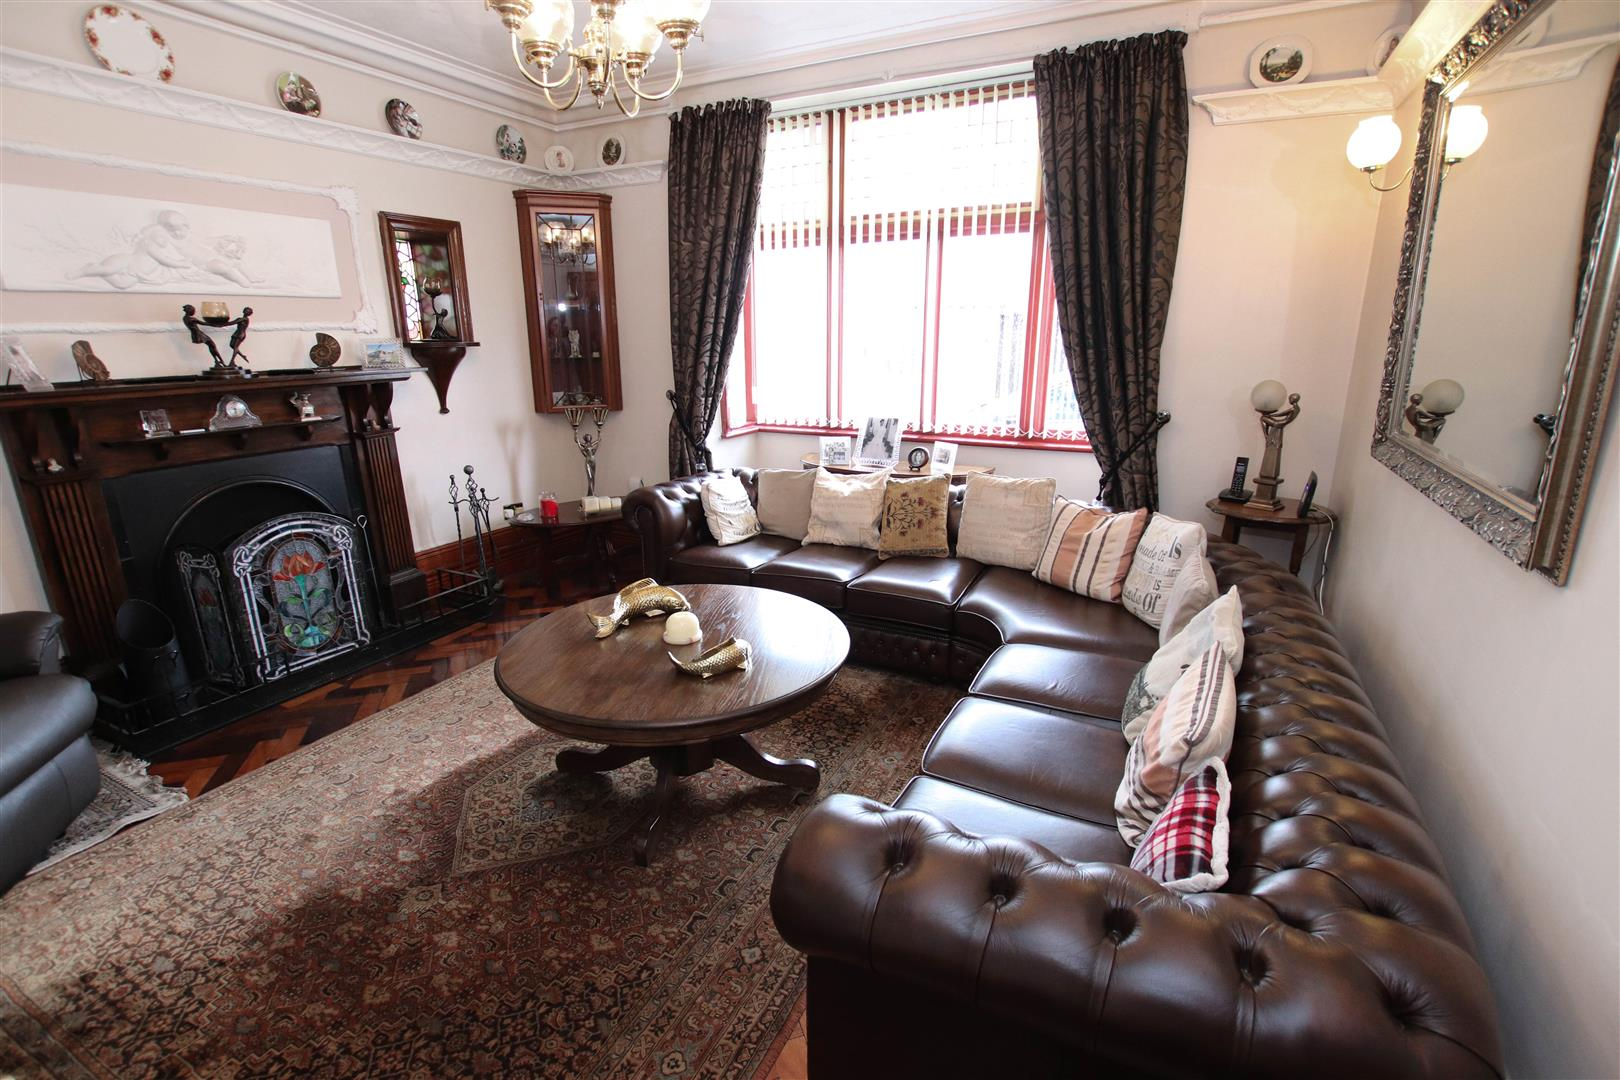 BAY FRONTED SITTING ROOM